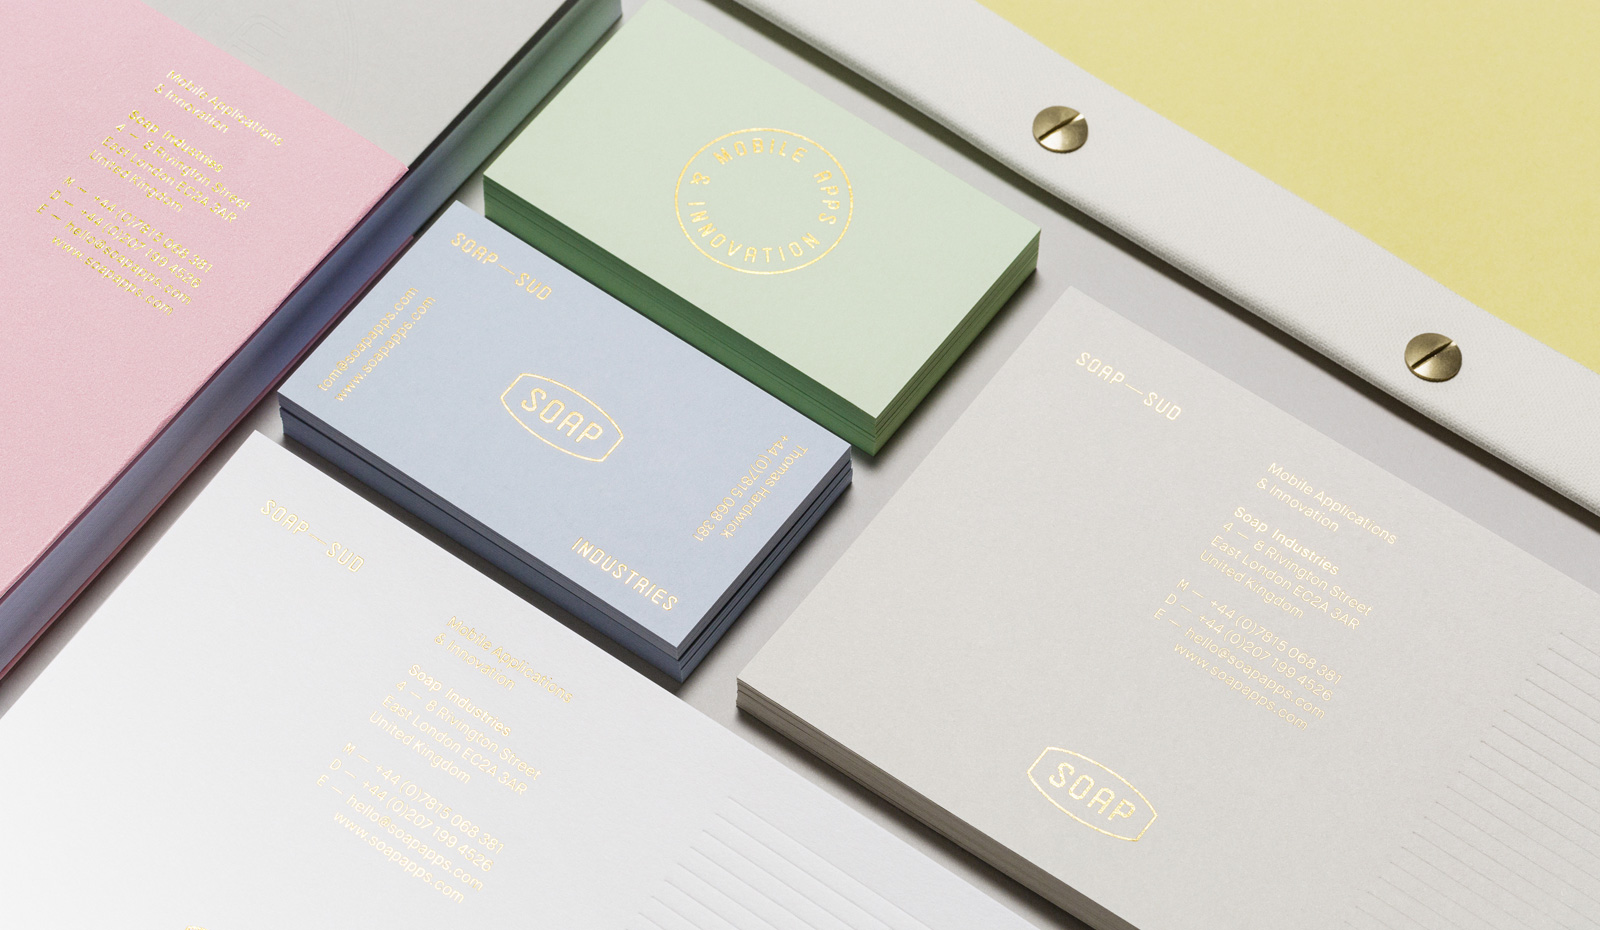 soap_stationery_0.jpg - Socio's pastel identity for app maker Soap Industries - 6153